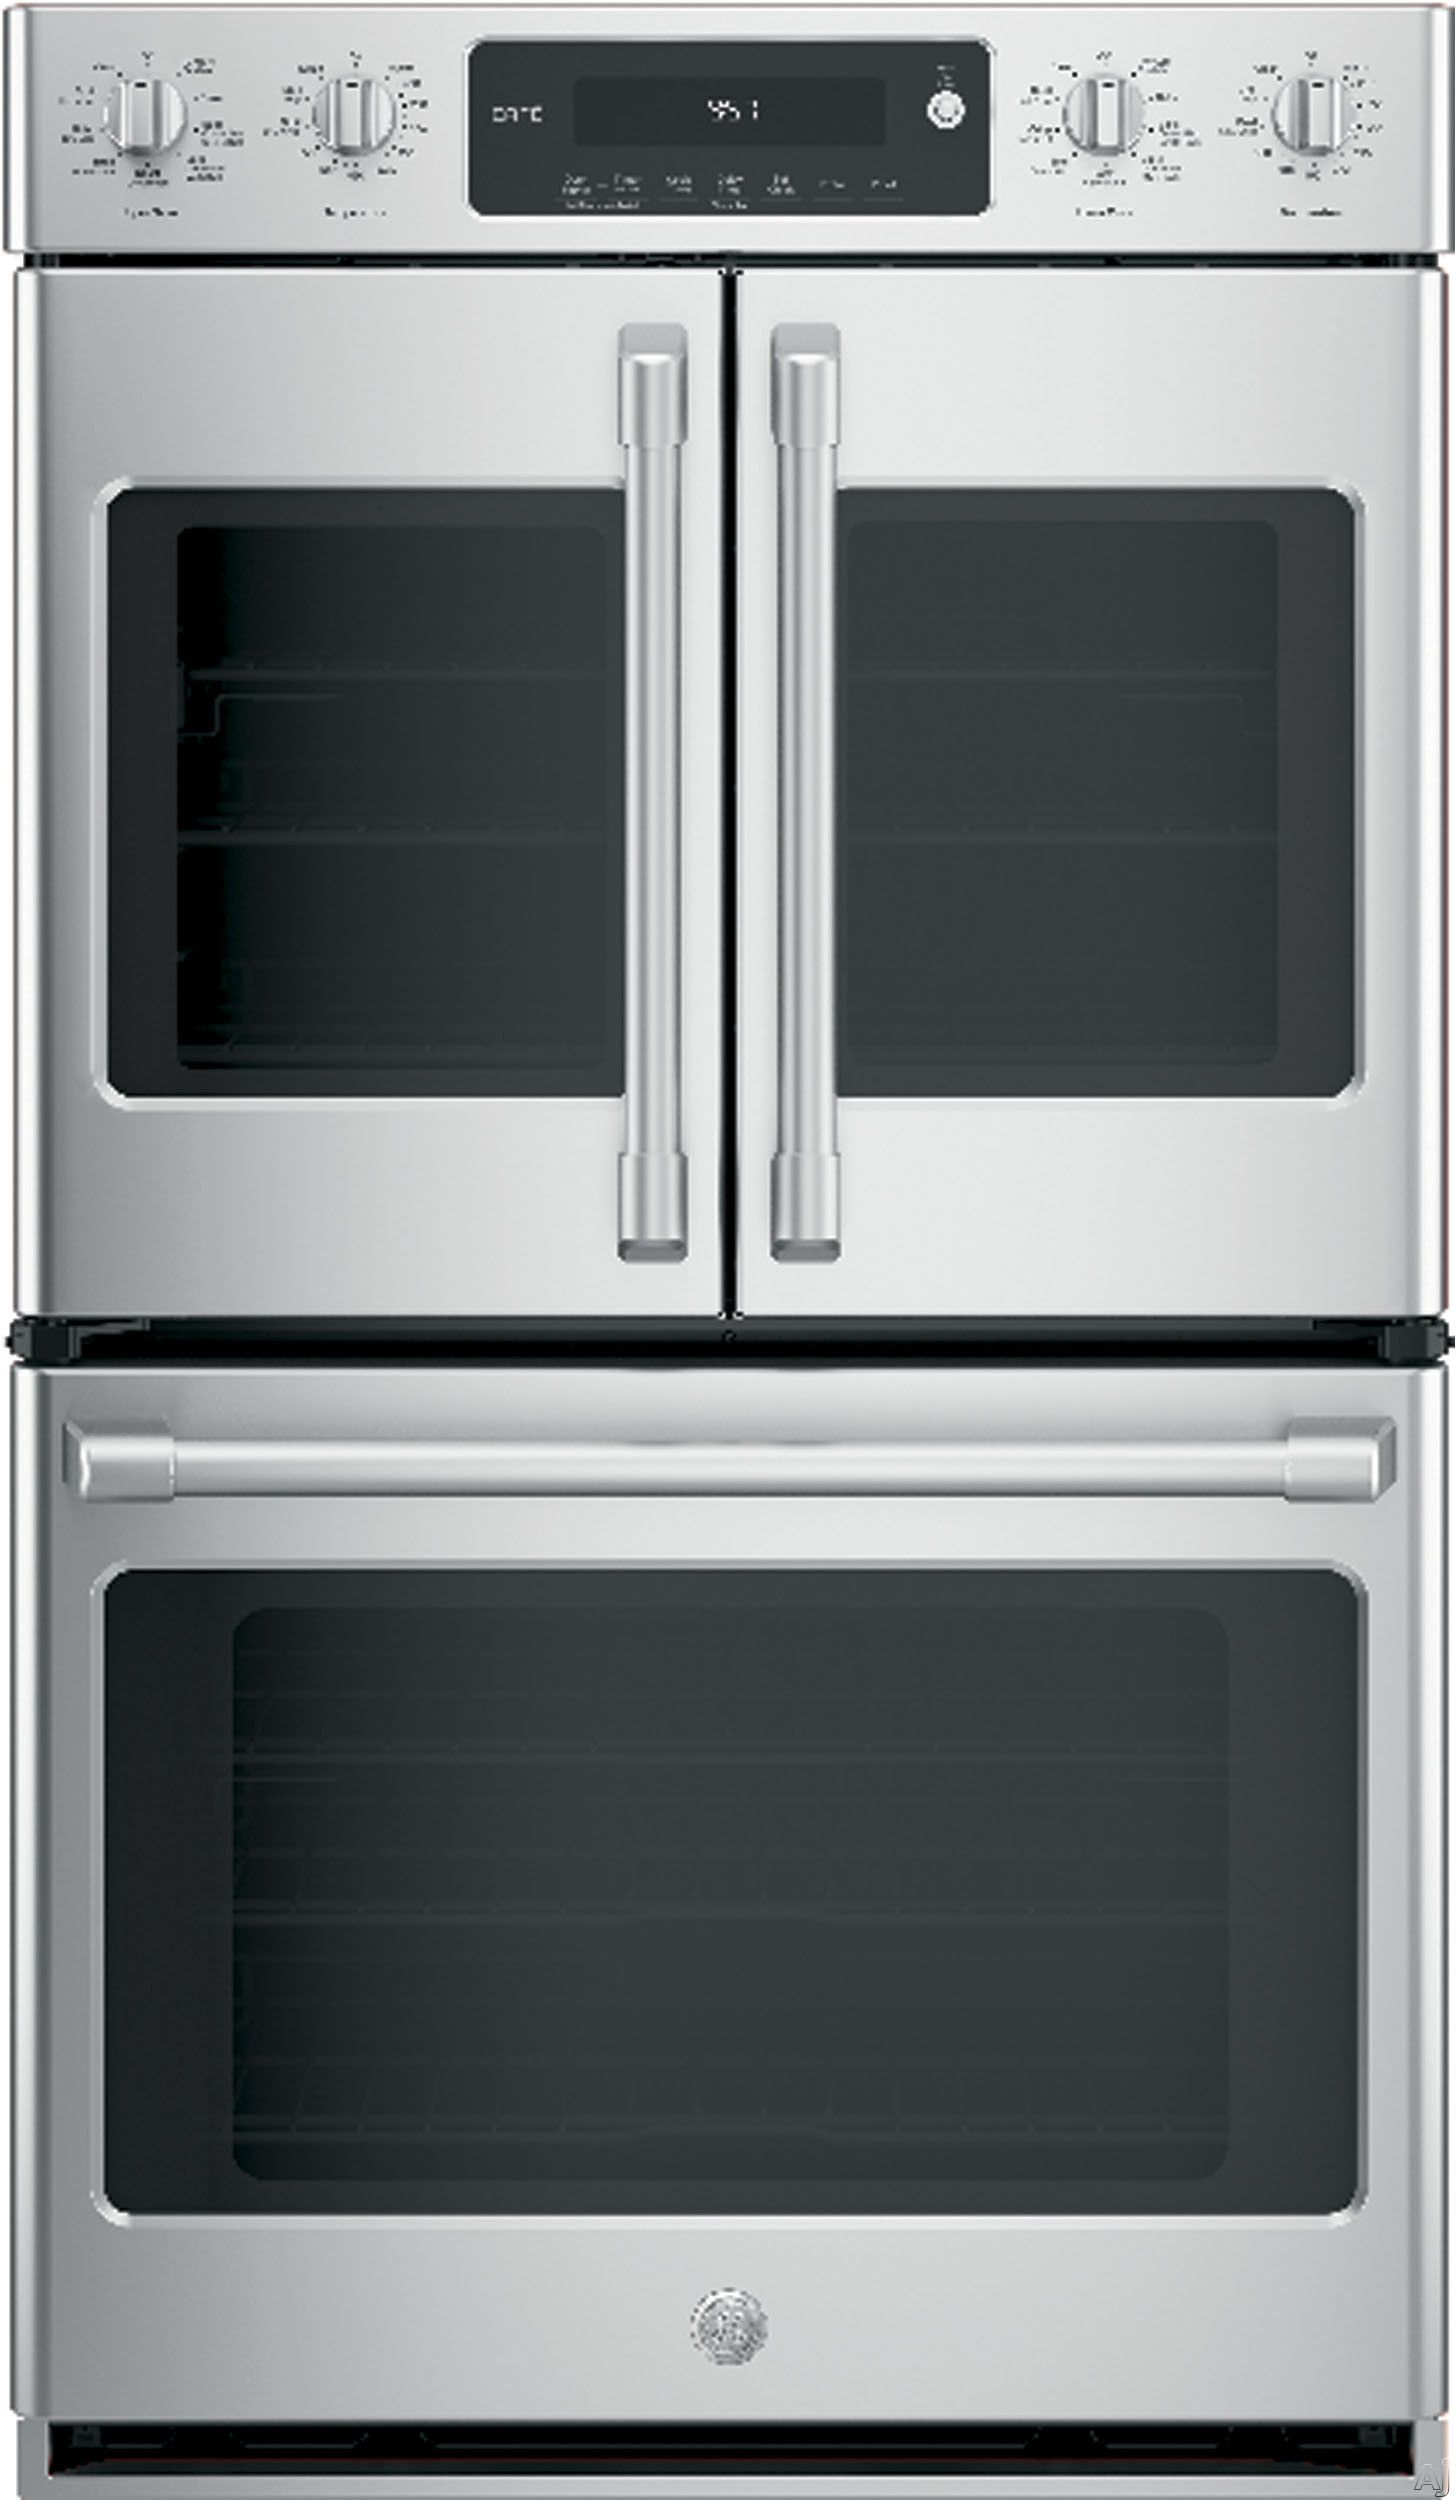 "GE Cafe Series 30"" Stainless Steel Built-In Double Convection Wall Oven"